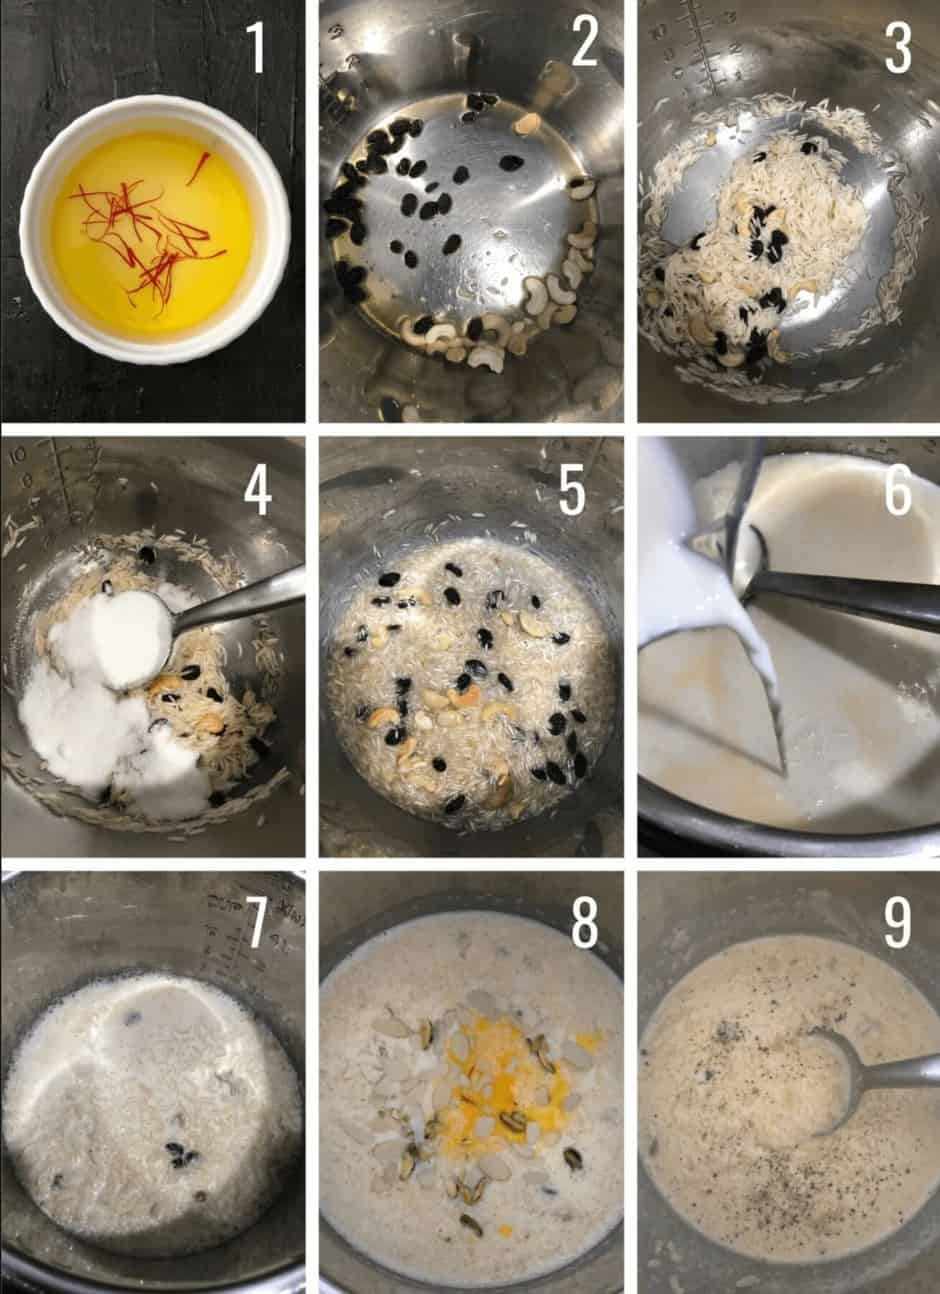 A step by step guide of how to make Indian Rice Pudding in an Instant Pot.